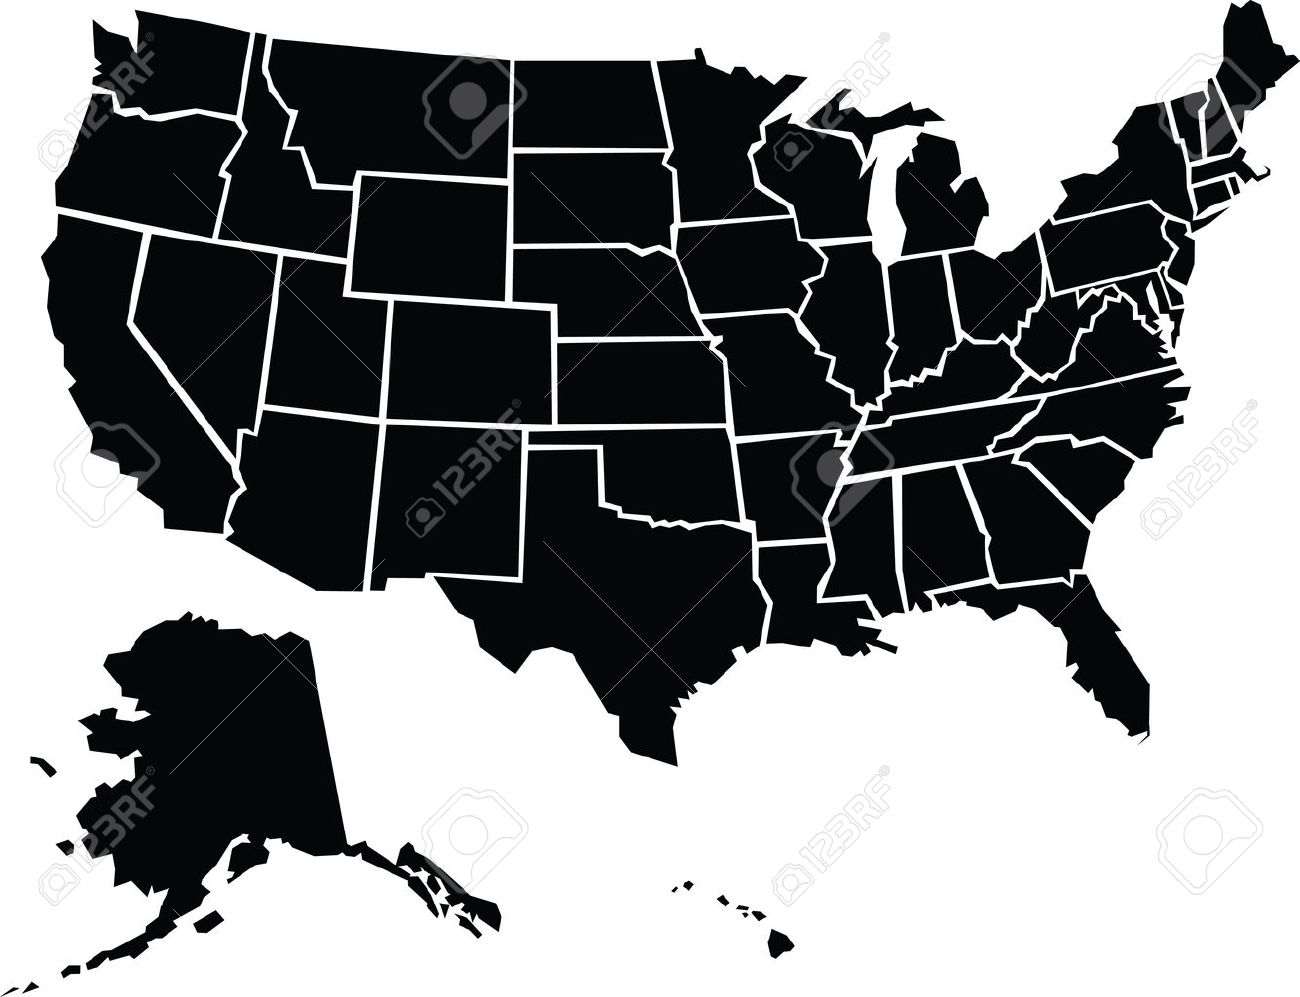 A Chunky Cartoon Map Of The Usa Including Alaska And Hawaii - Cartoon-map-of-the-us